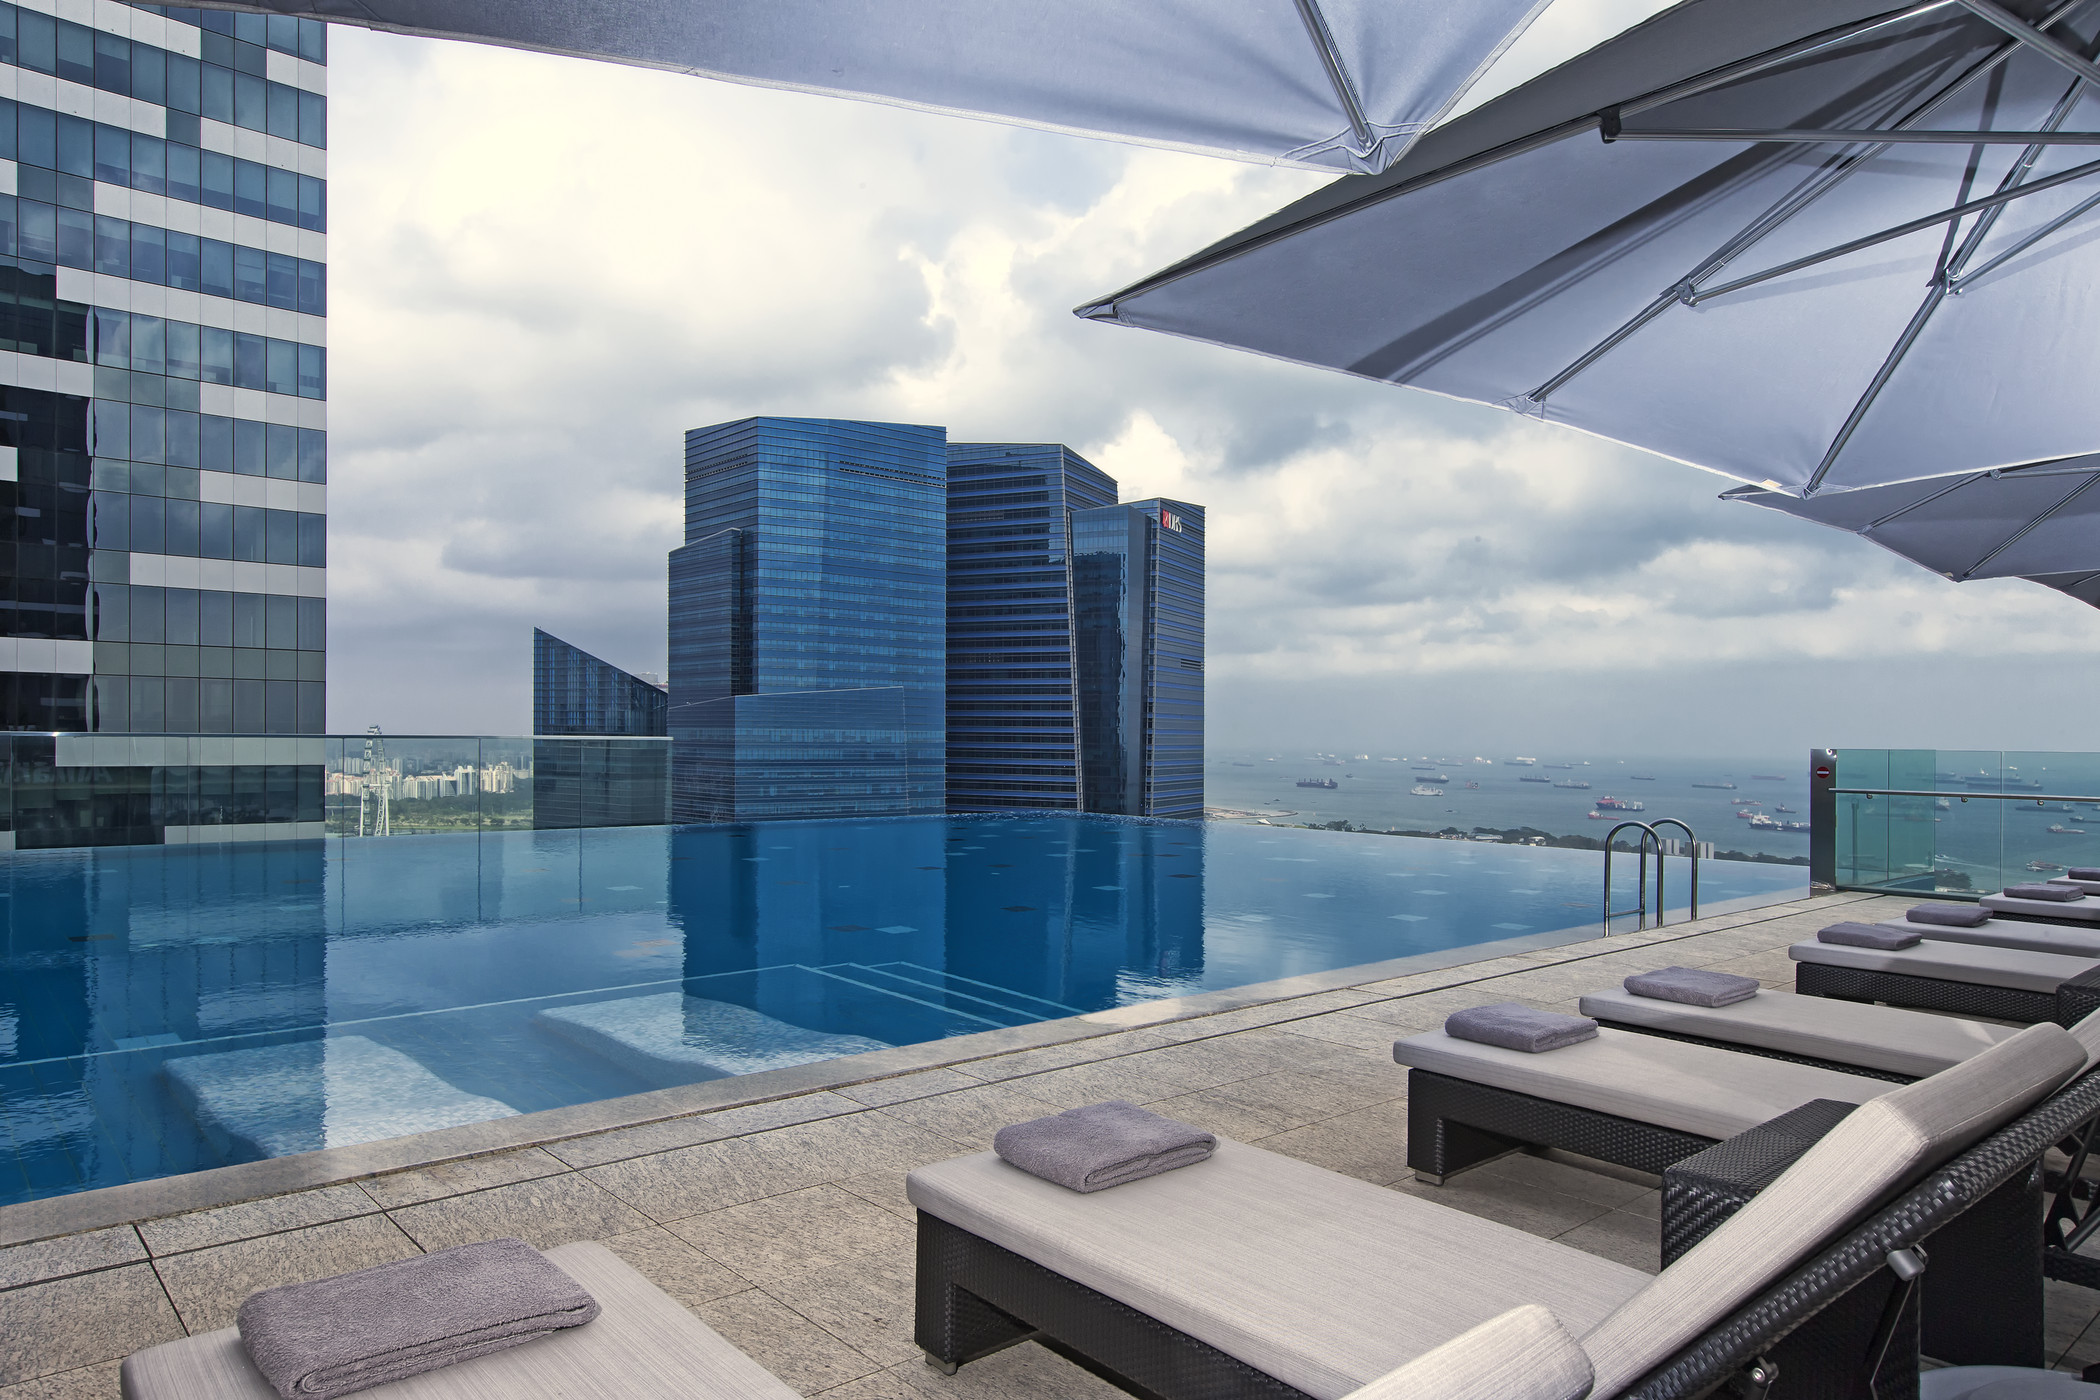 95 Singapore Hotels Infinity Pool Marina Bay Sands Hotel Infinity Pool In Singapore At Night